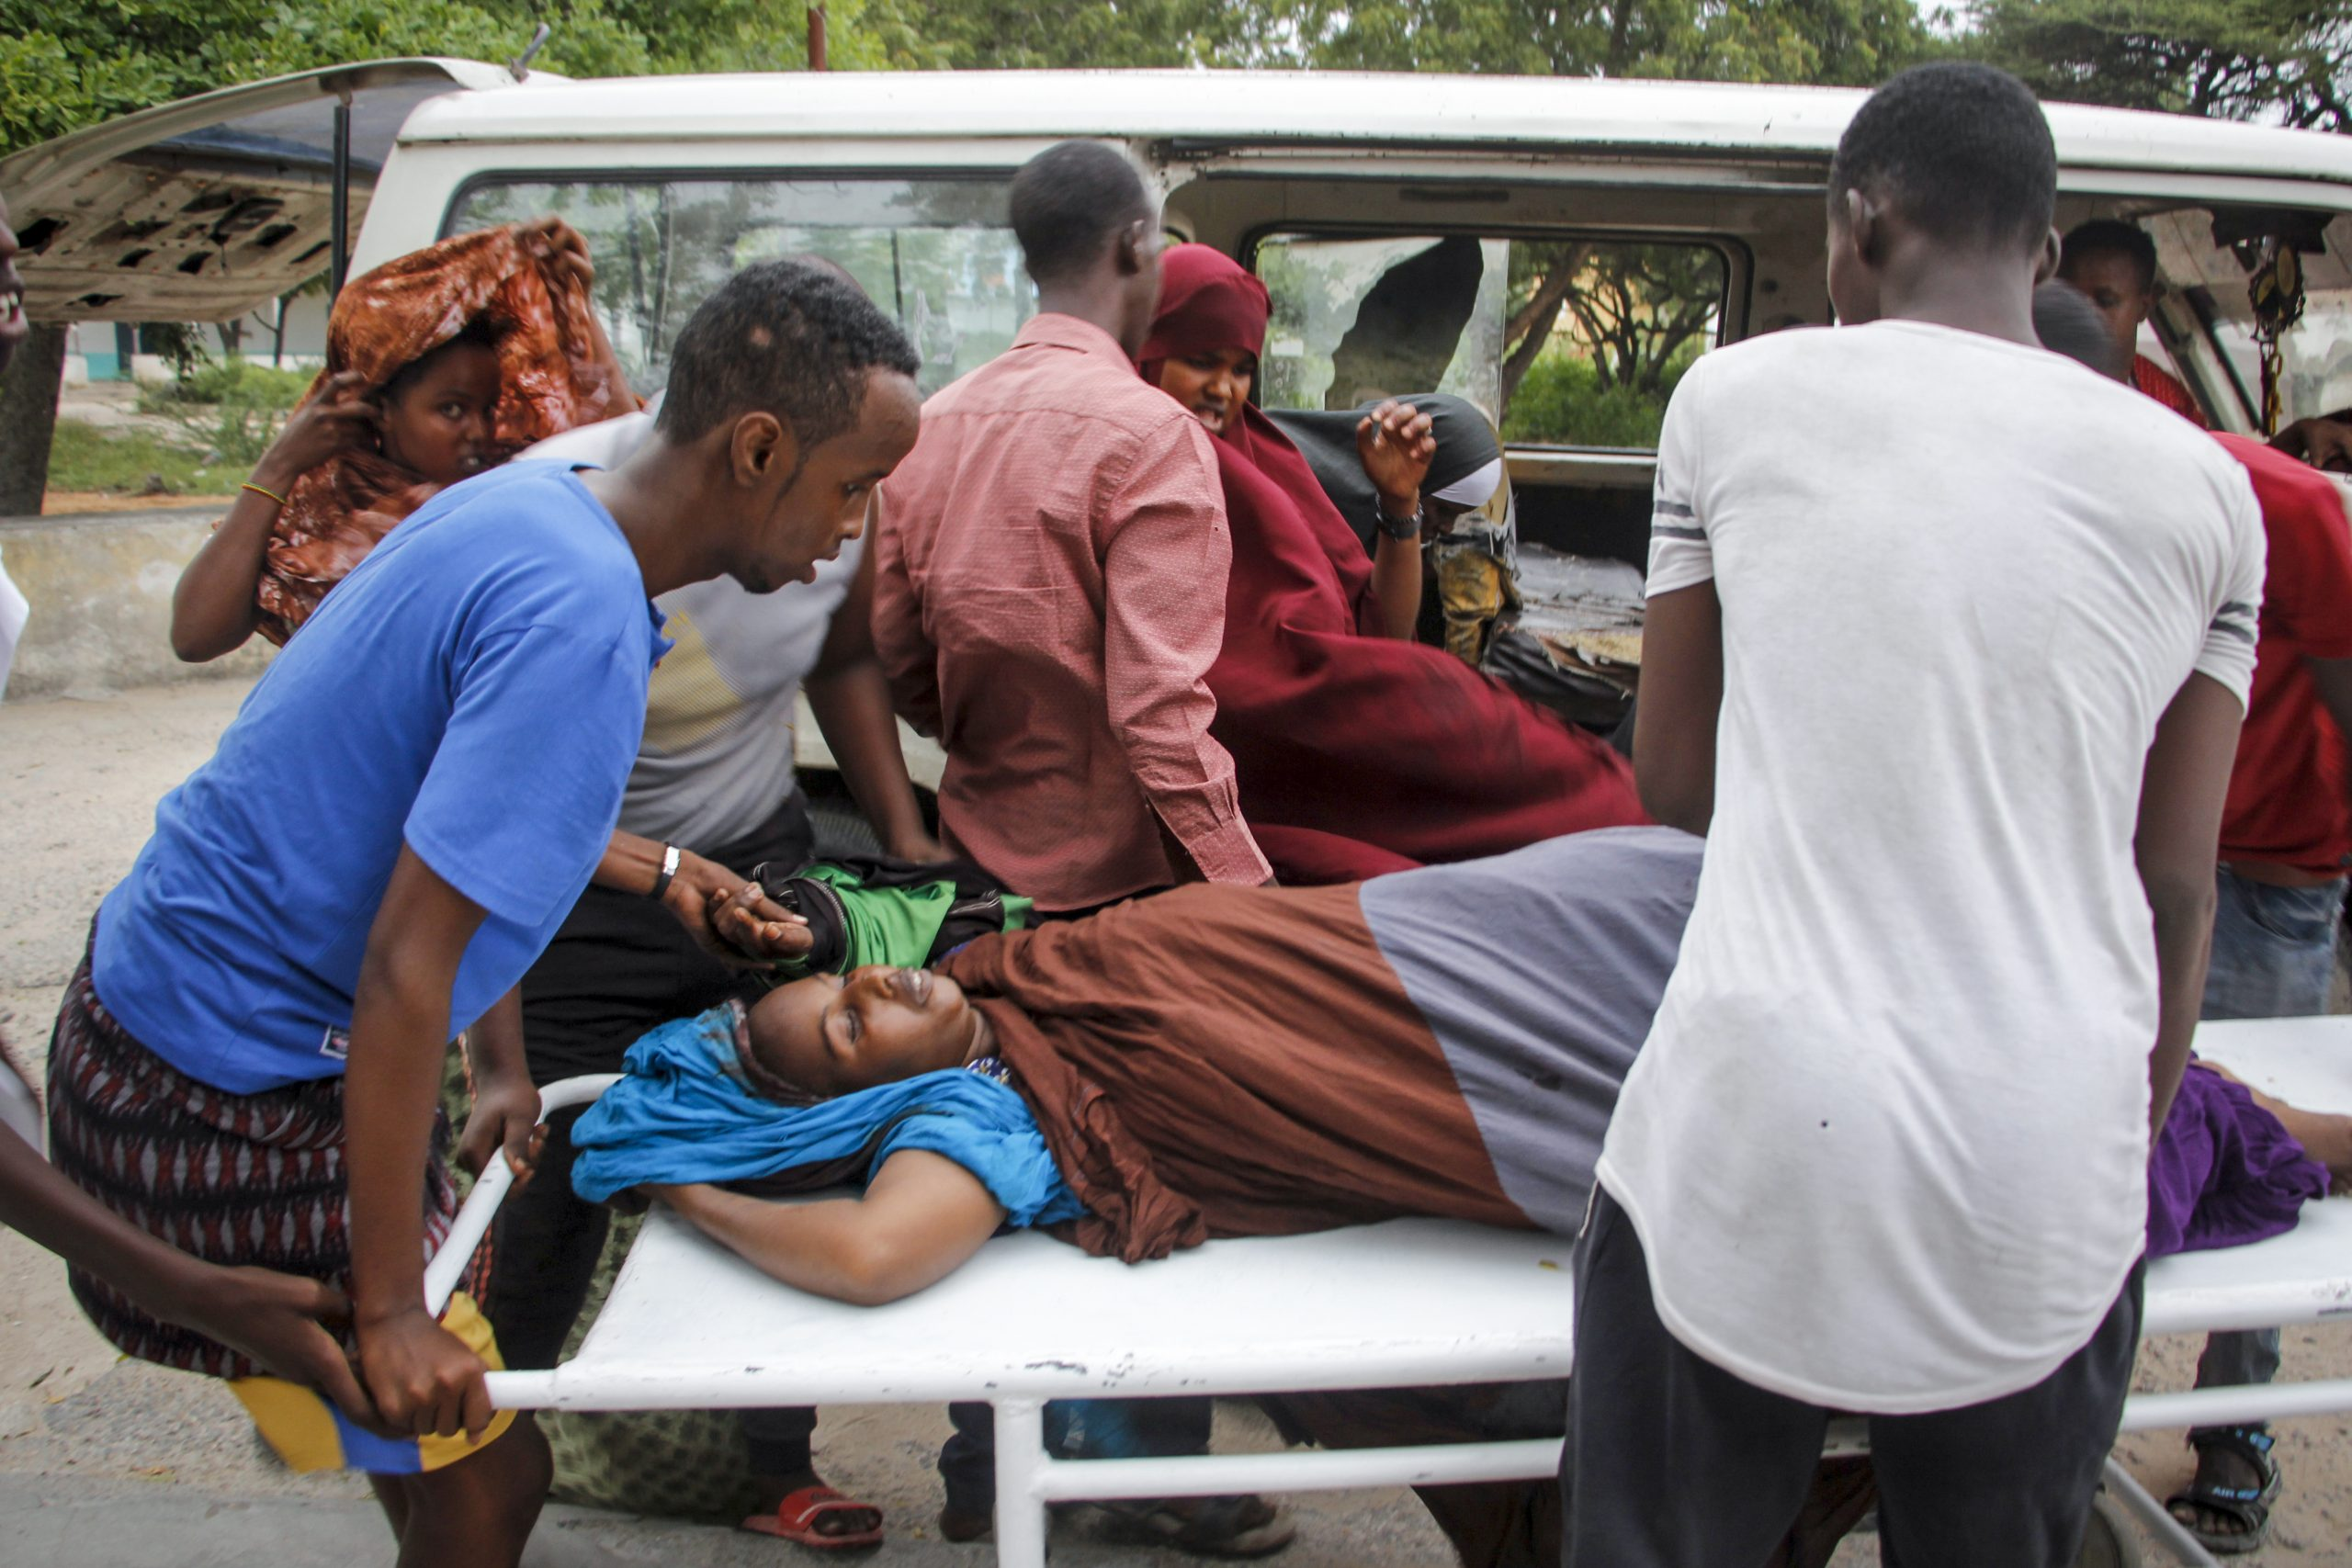 Security Somalia ends five hours rebel siege forces killed in a Mogadishu hotel 15